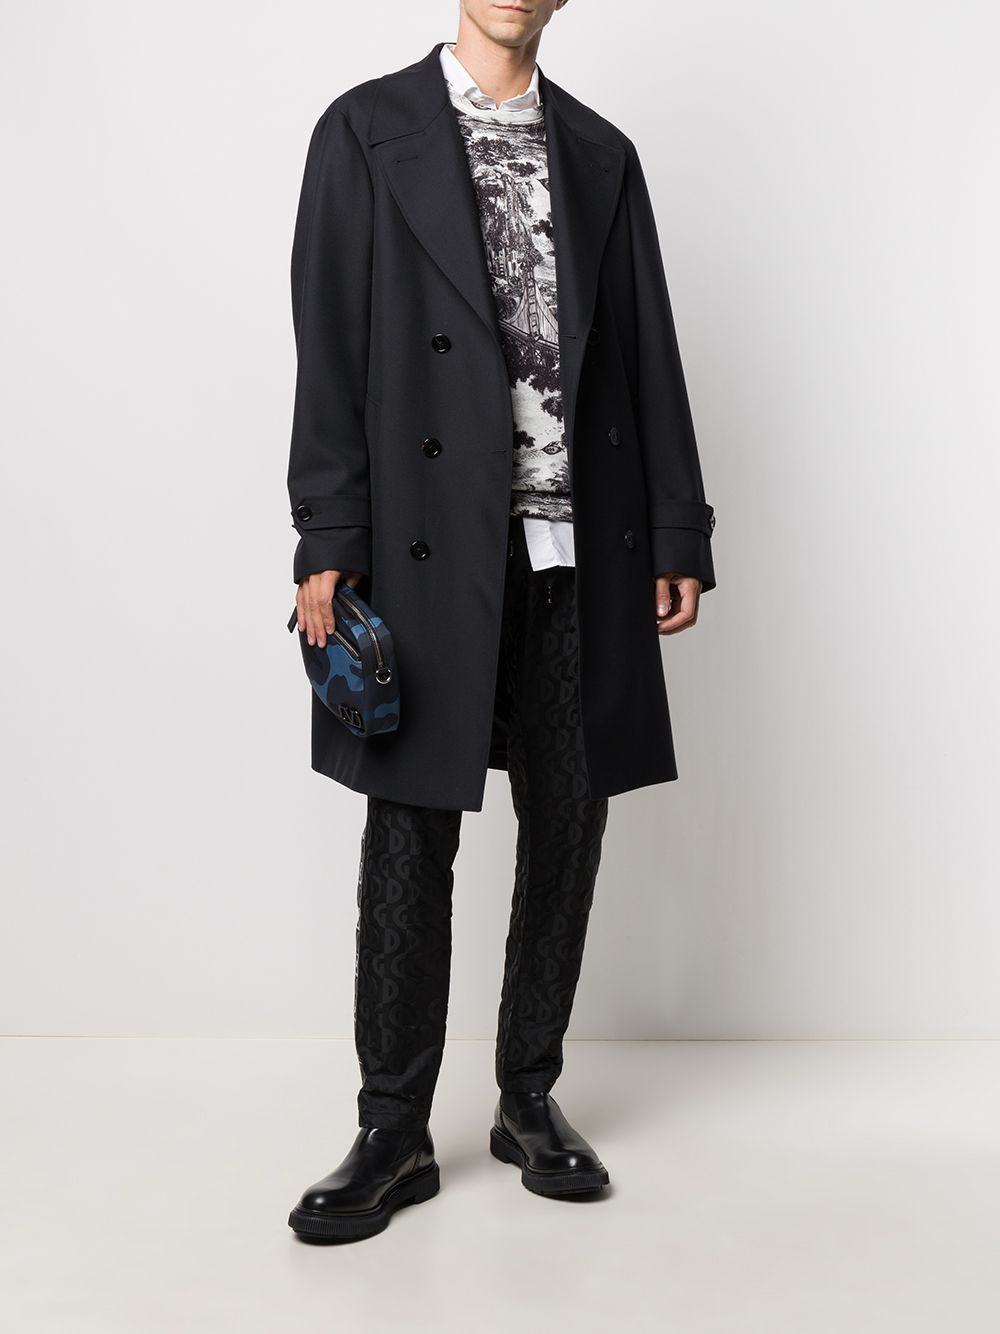 Black wool-blend belted trench coat featuring notched lapels DOLCE & GABBANA |  | G021CT-HUMJMN0000